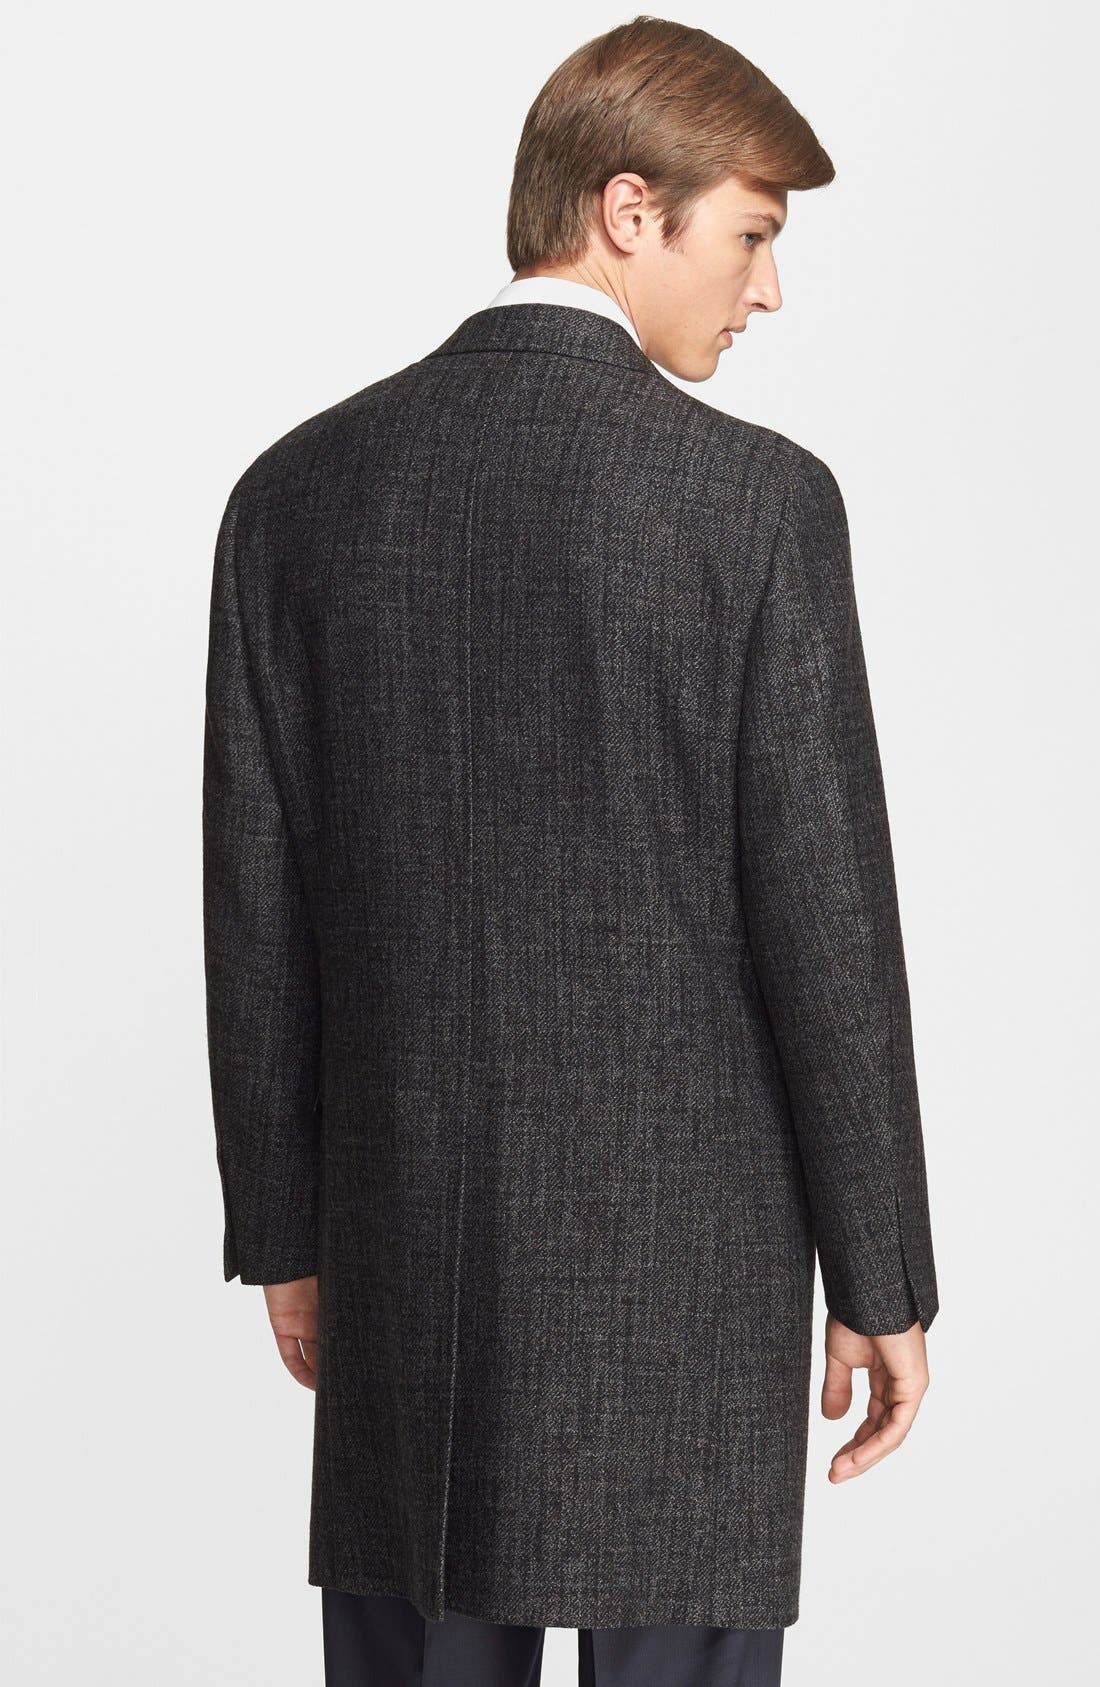 CANALI,                             Plaid Wool Overcoat,                             Alternate thumbnail 2, color,                             011